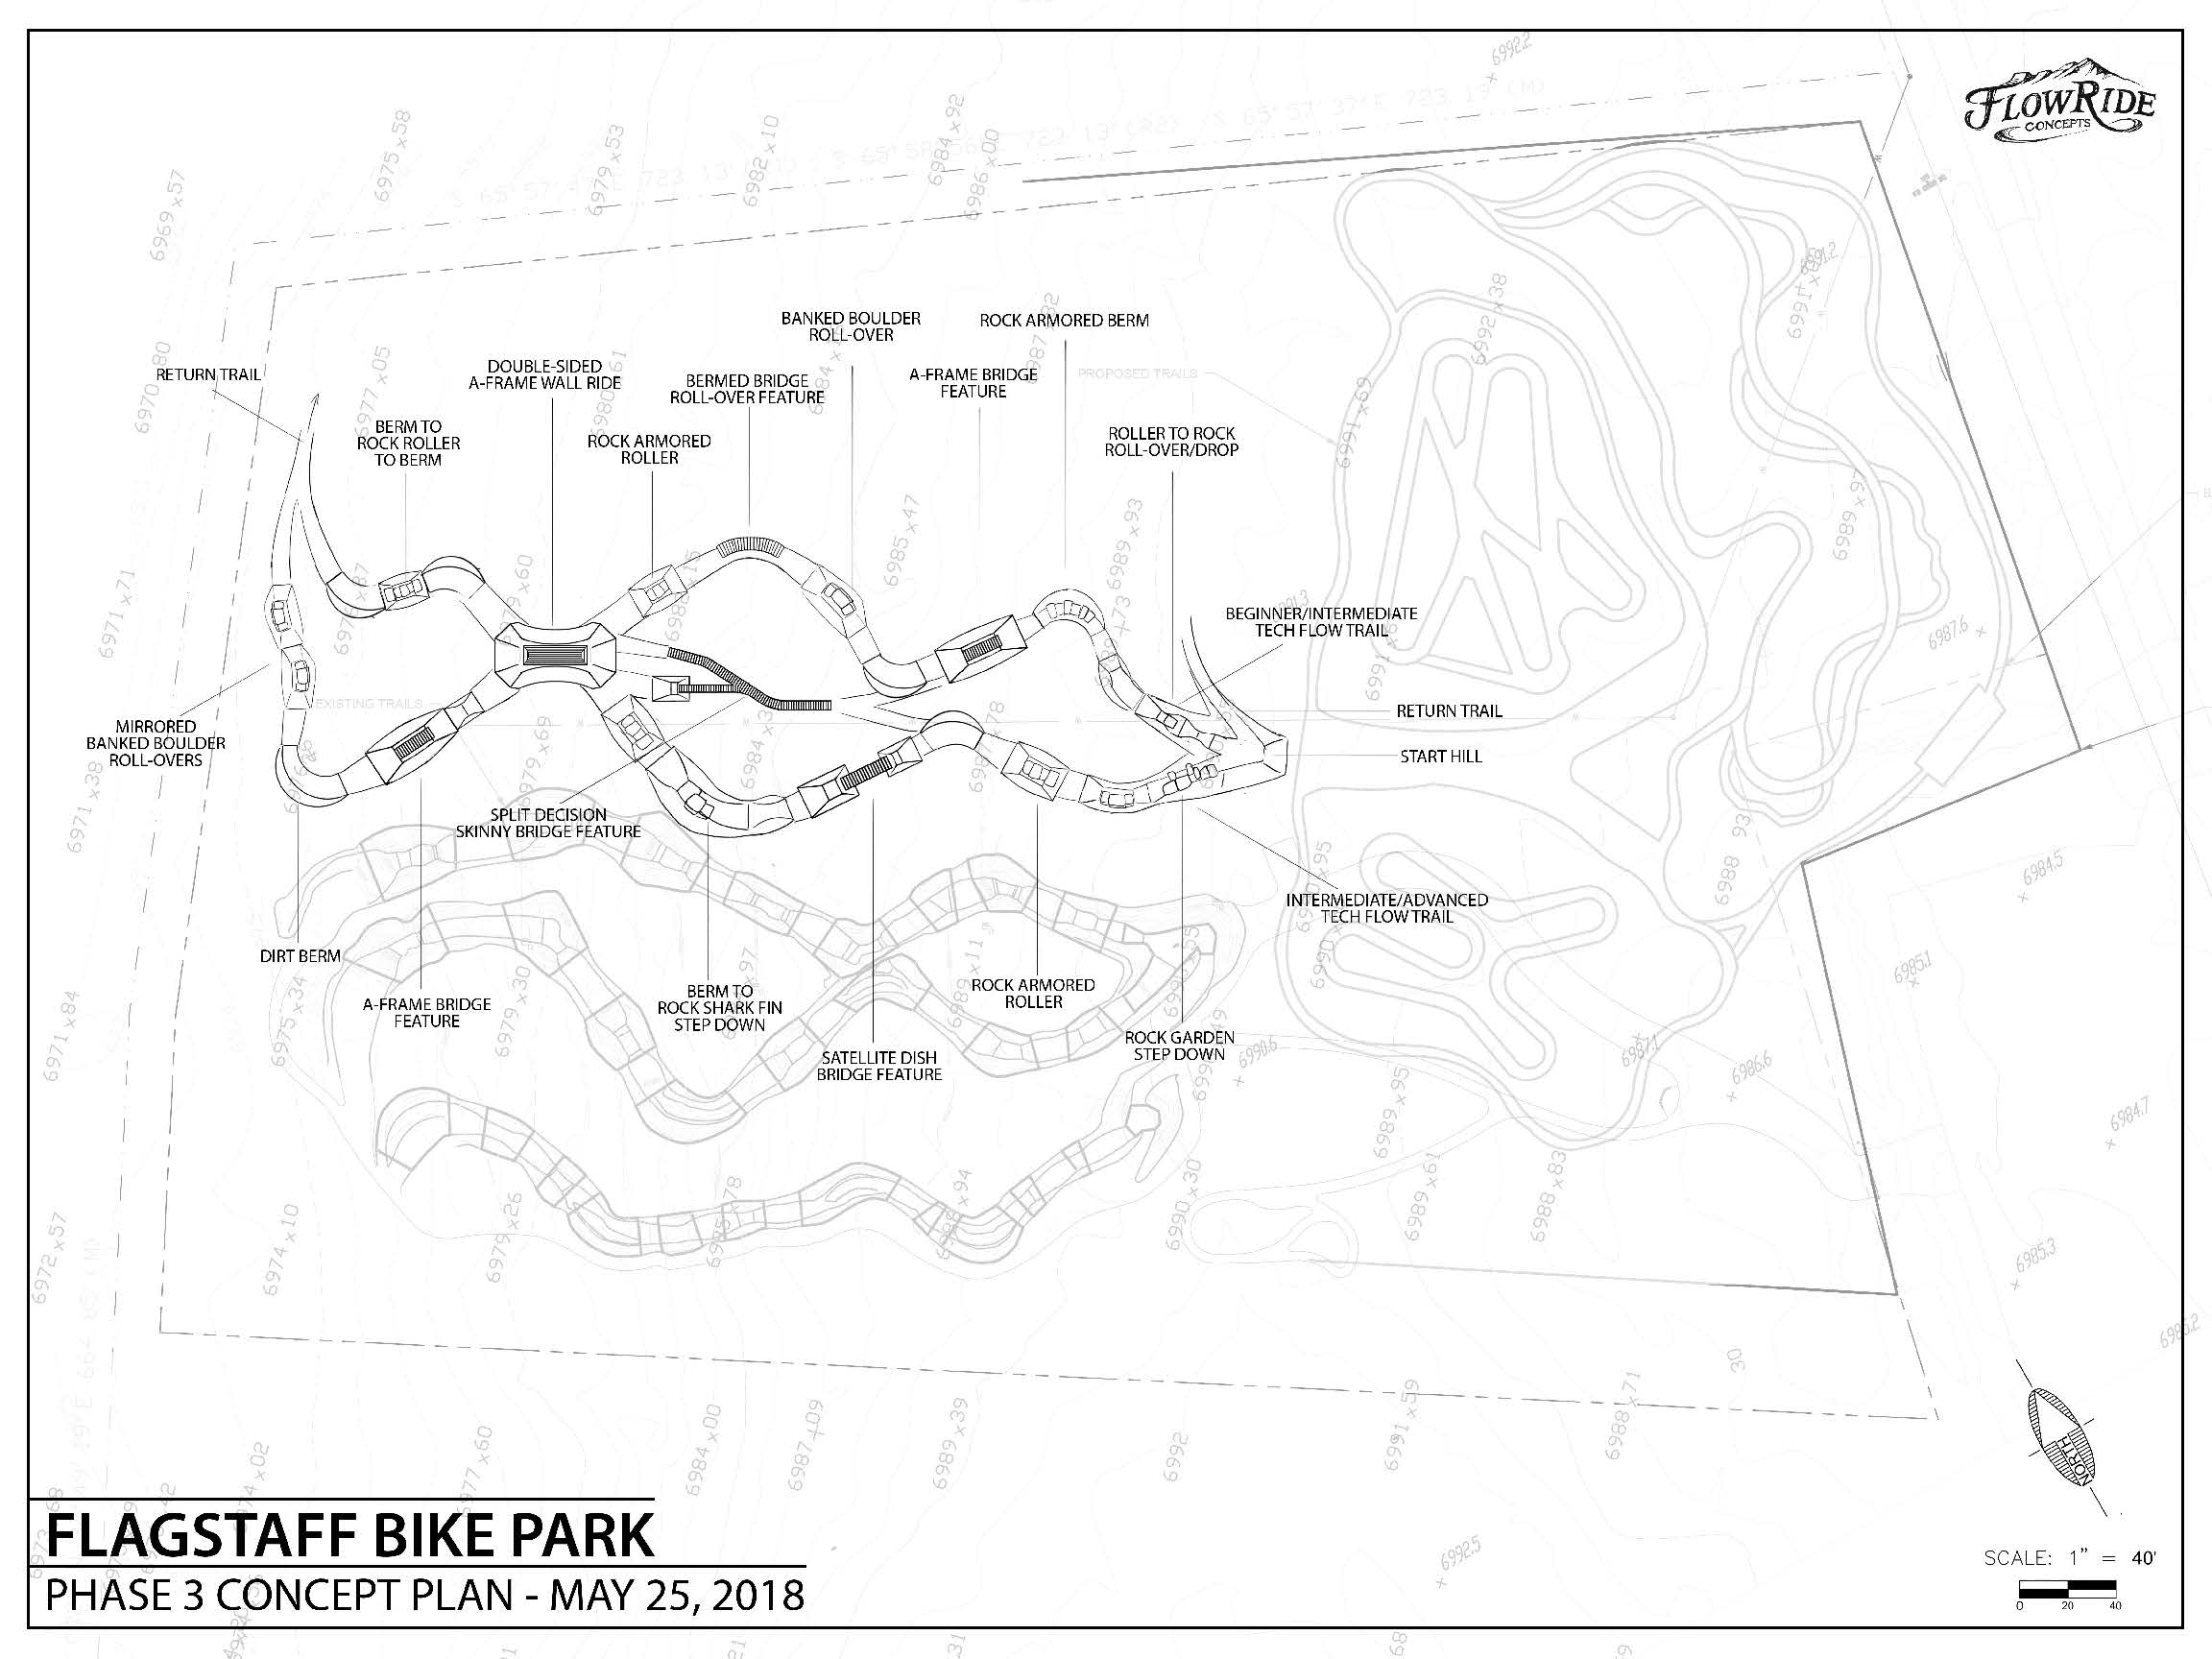 FlagBikePark Ph3 ConceptPlan DRAFT